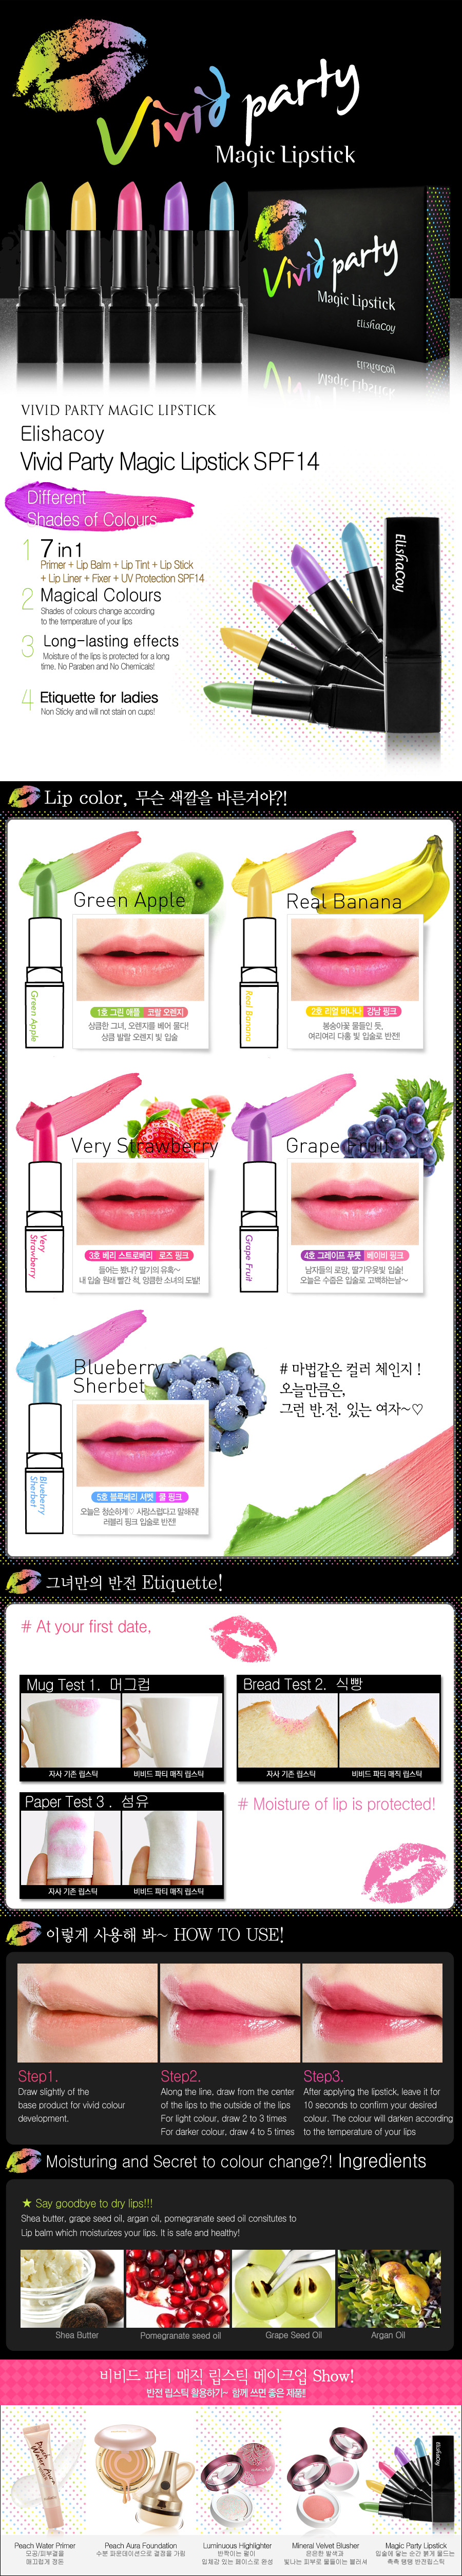 Vivid Party Magic Lipstick